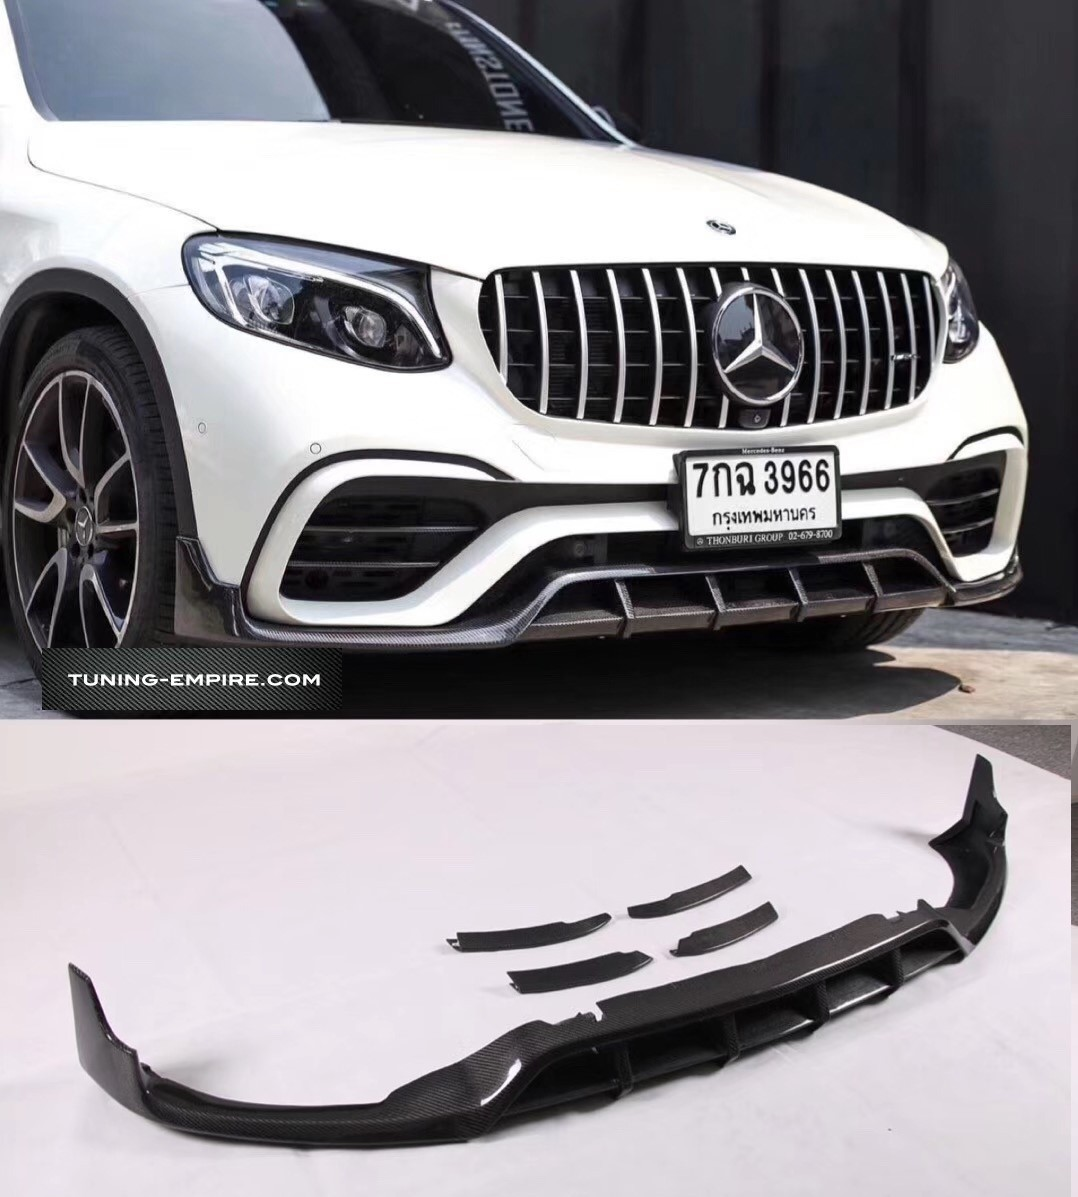 Mercedes Glc 63 Amg Coupe Upgrade Kit For Non 63 Amg Mercedes Glc Coupe